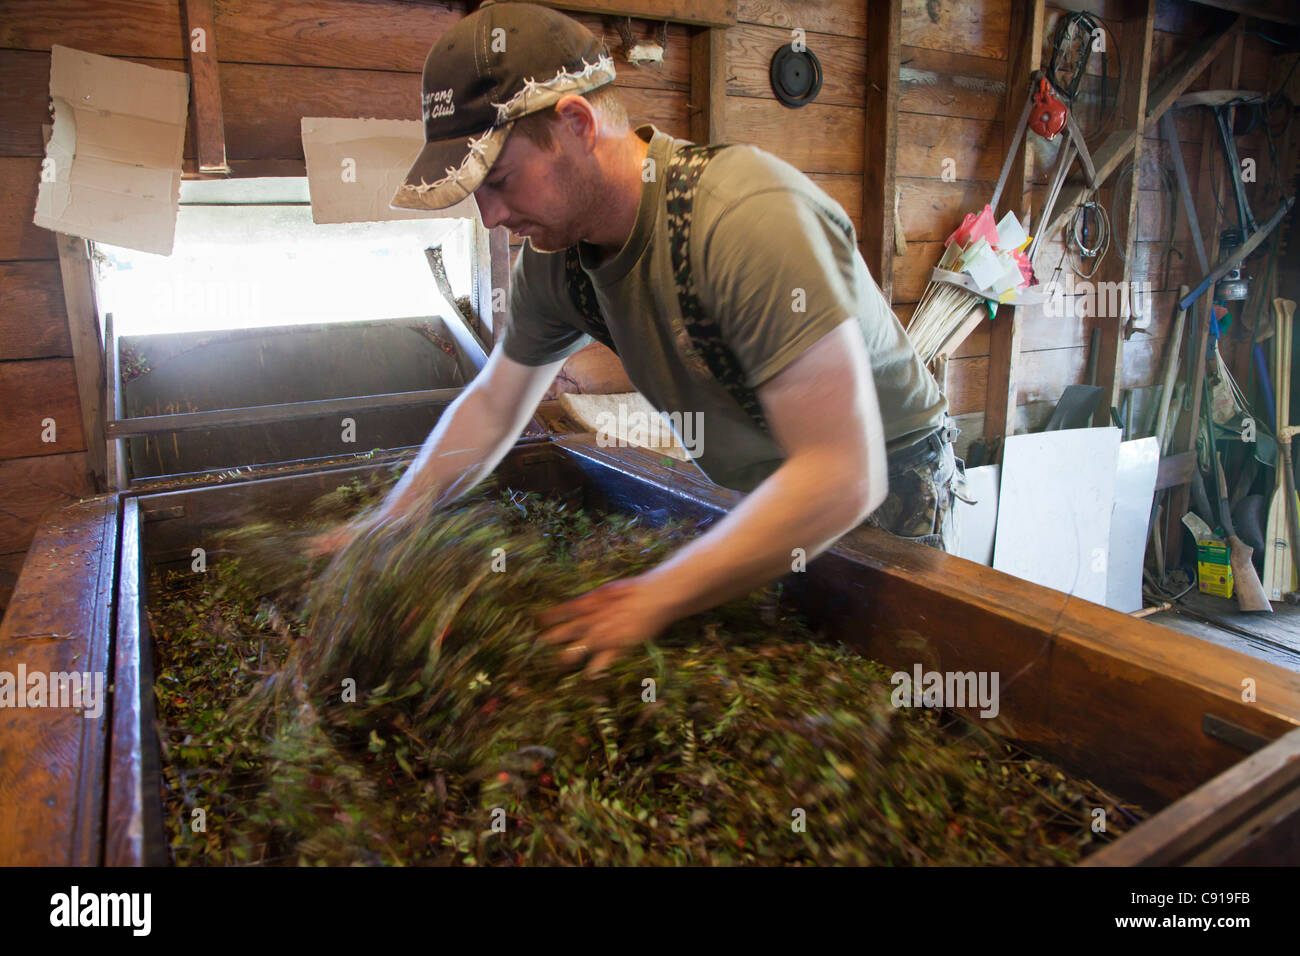 Man separating the cranberries for the vines in machine. - Stock Image